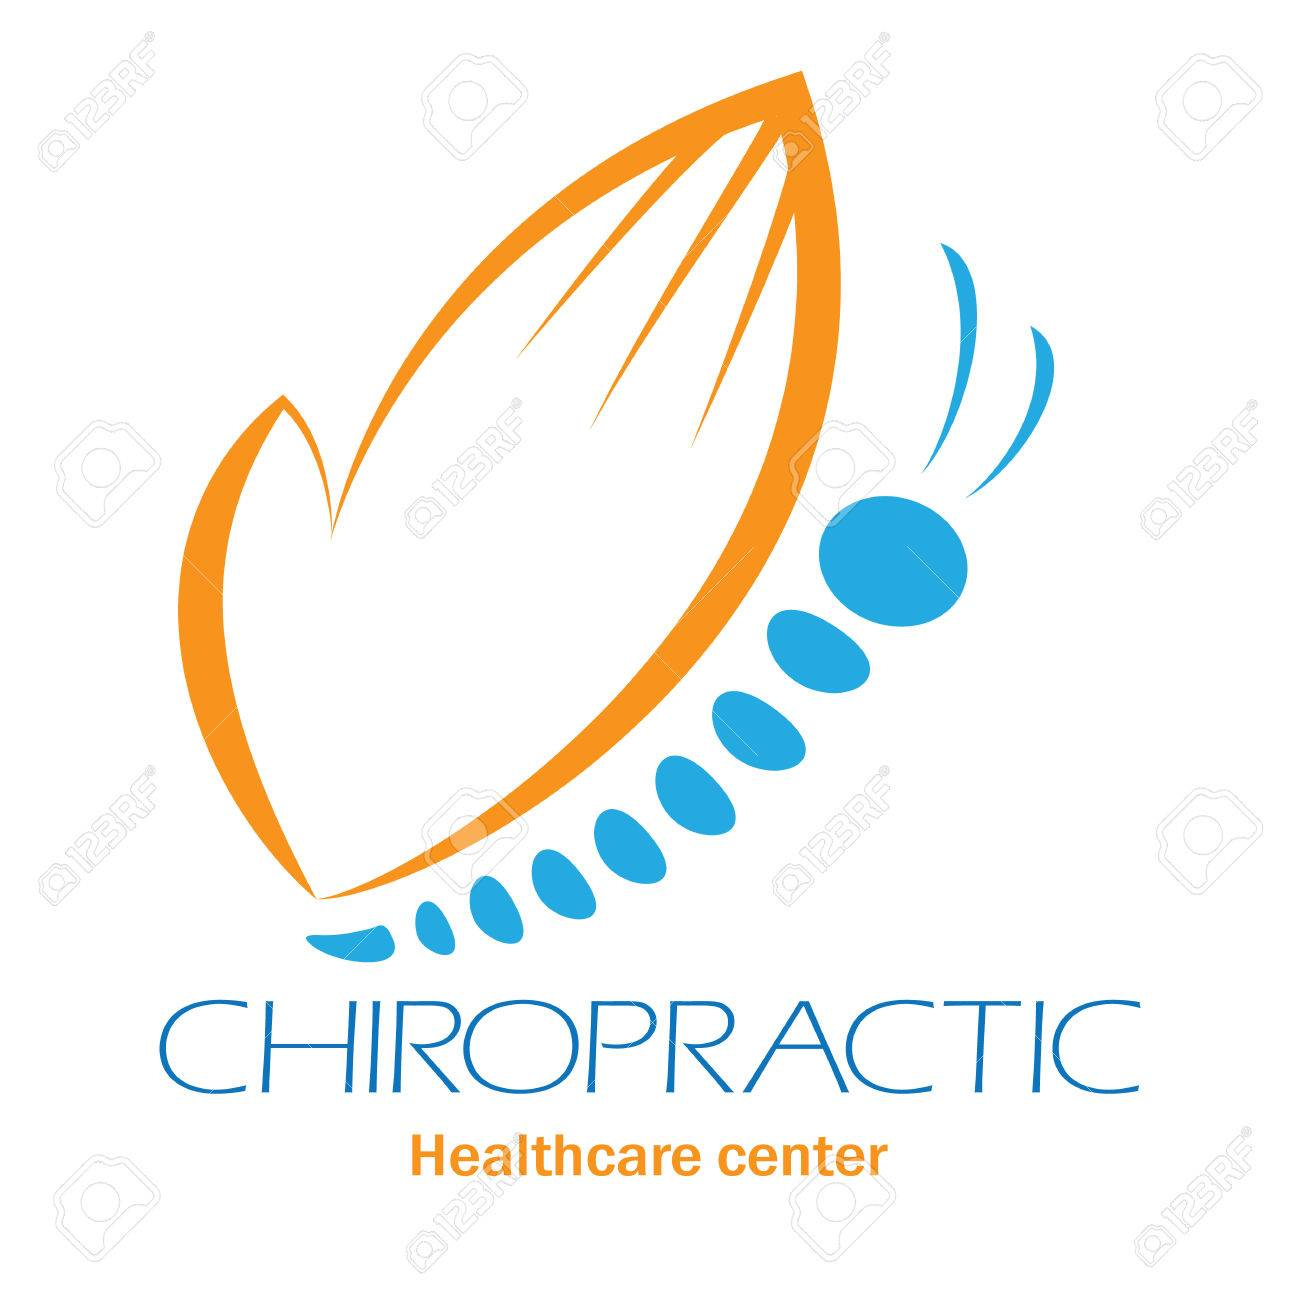 Chiropractic clinic with butterfly symbol of hand and spine chiropractic clinic with butterfly symbol of hand and spine stock vector 62282587 biocorpaavc Image collections